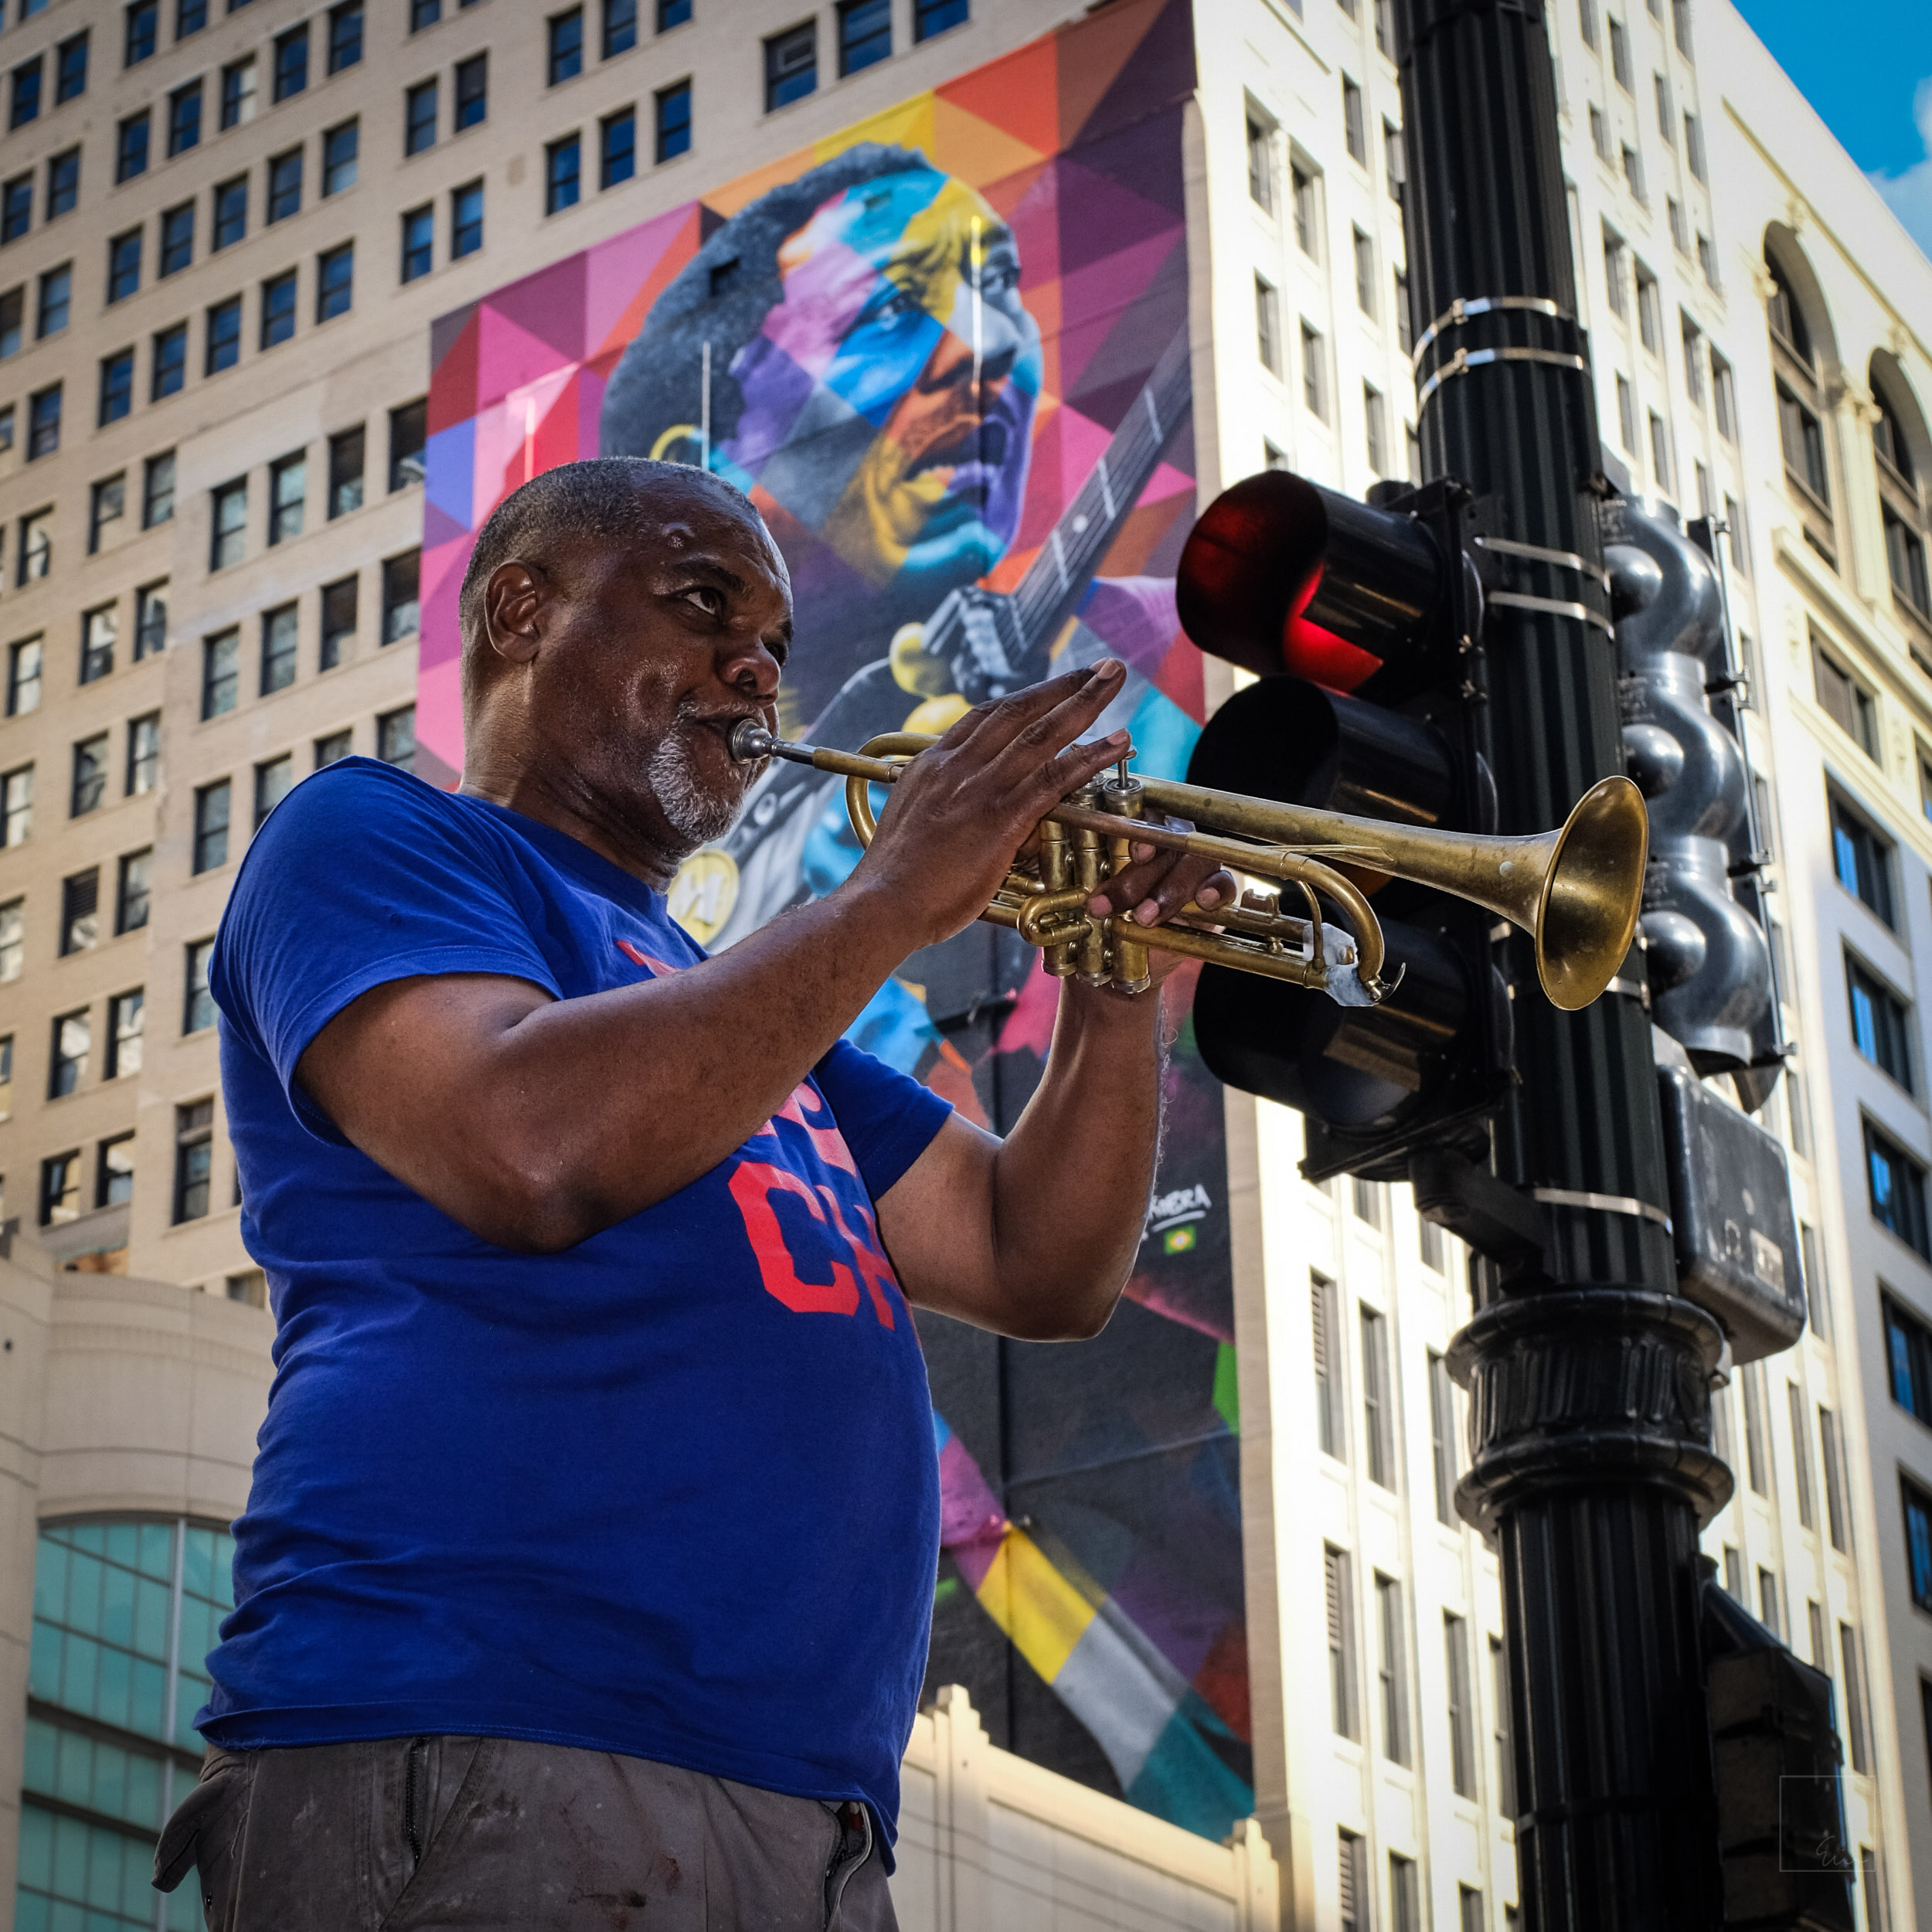 Jazz & blues in Chicago